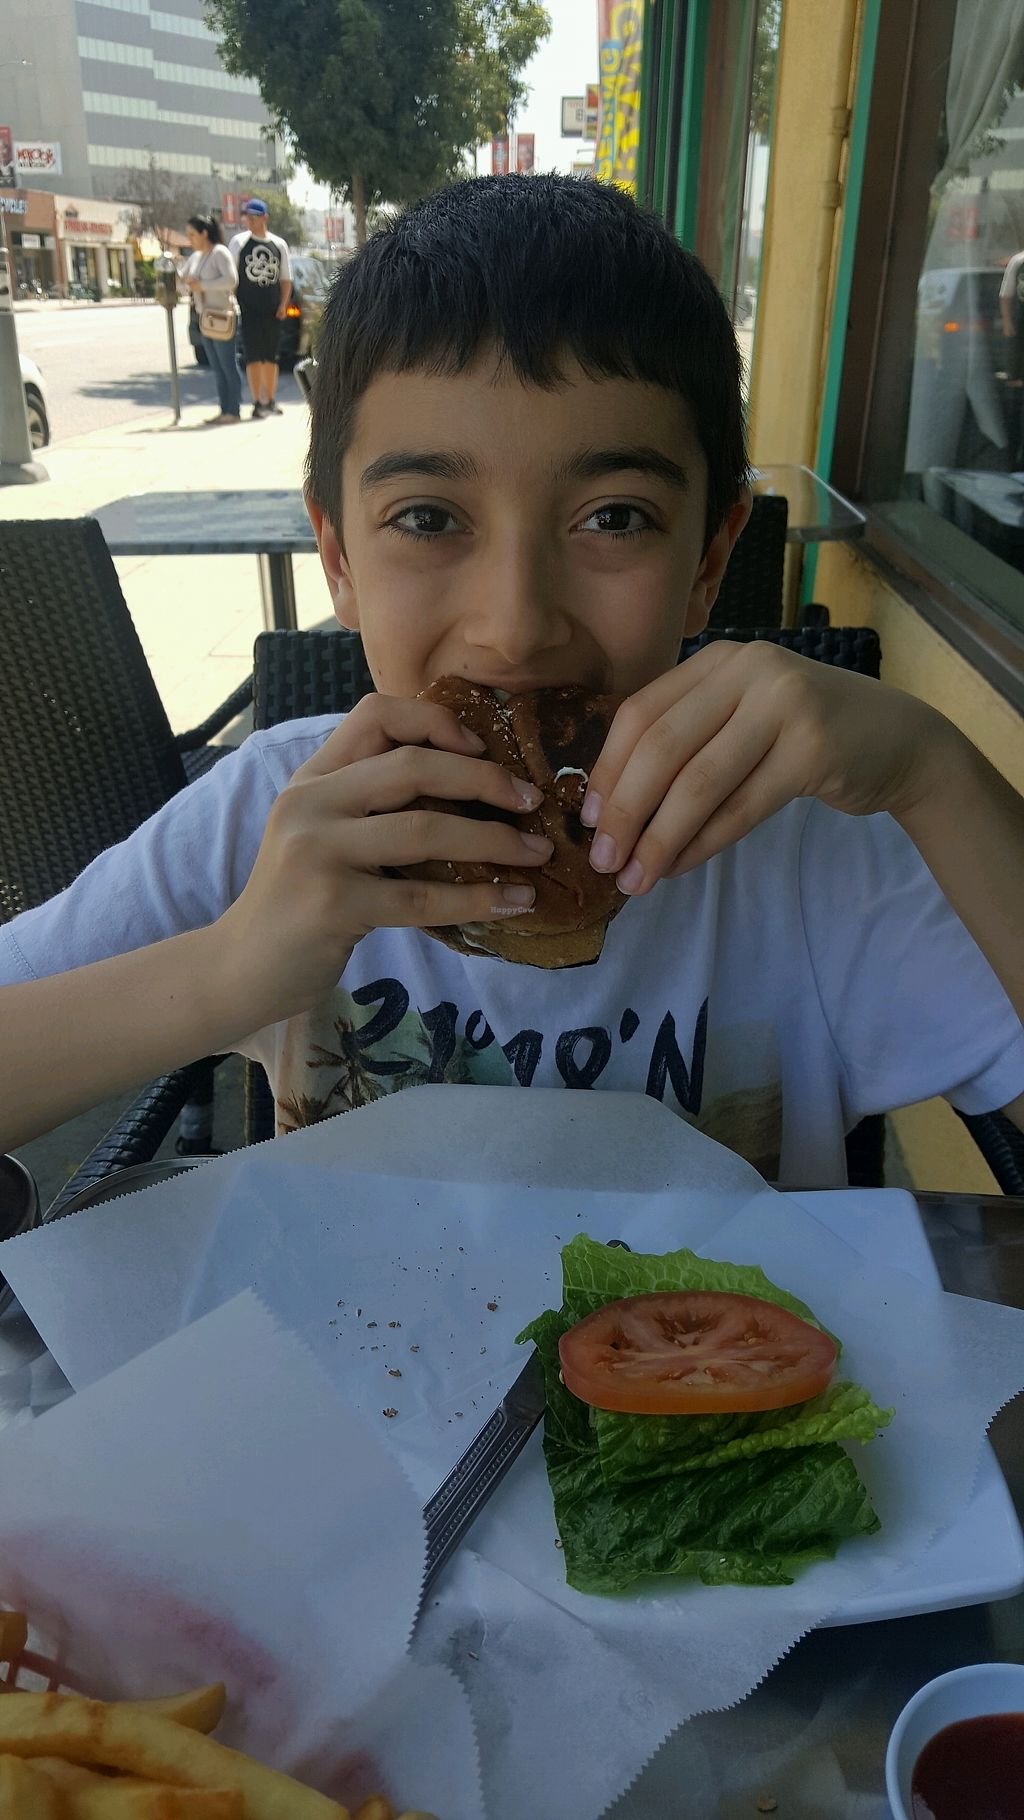 """Photo of Lotus Vegan  by <a href=""""/members/profile/SetaYanikian"""">SetaYanikian</a> <br/>Fish burger <br/> March 31, 2018  - <a href='/contact/abuse/image/13563/378537'>Report</a>"""